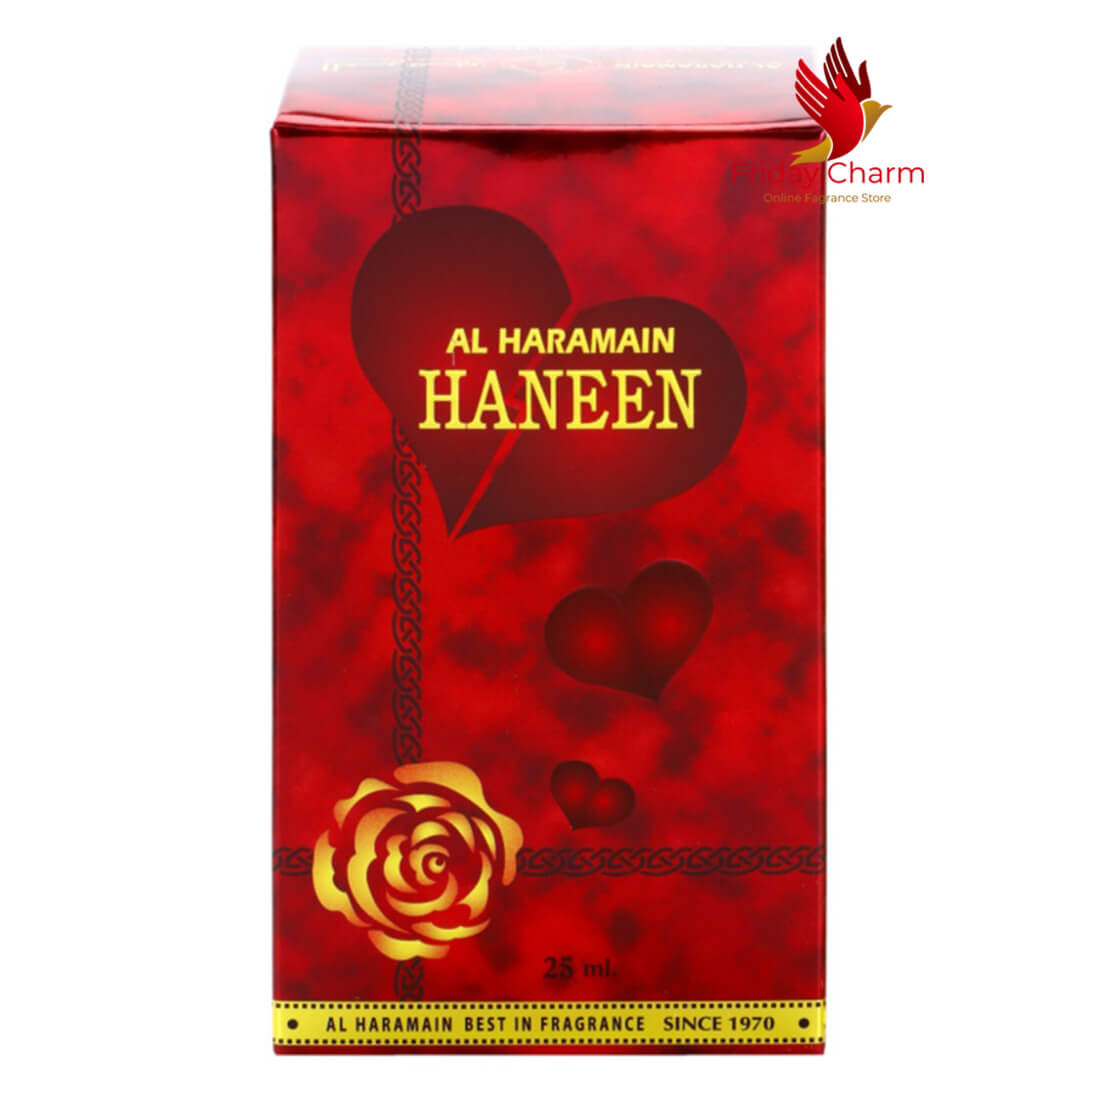 Al Haramain Haneen Attar - 25 ml